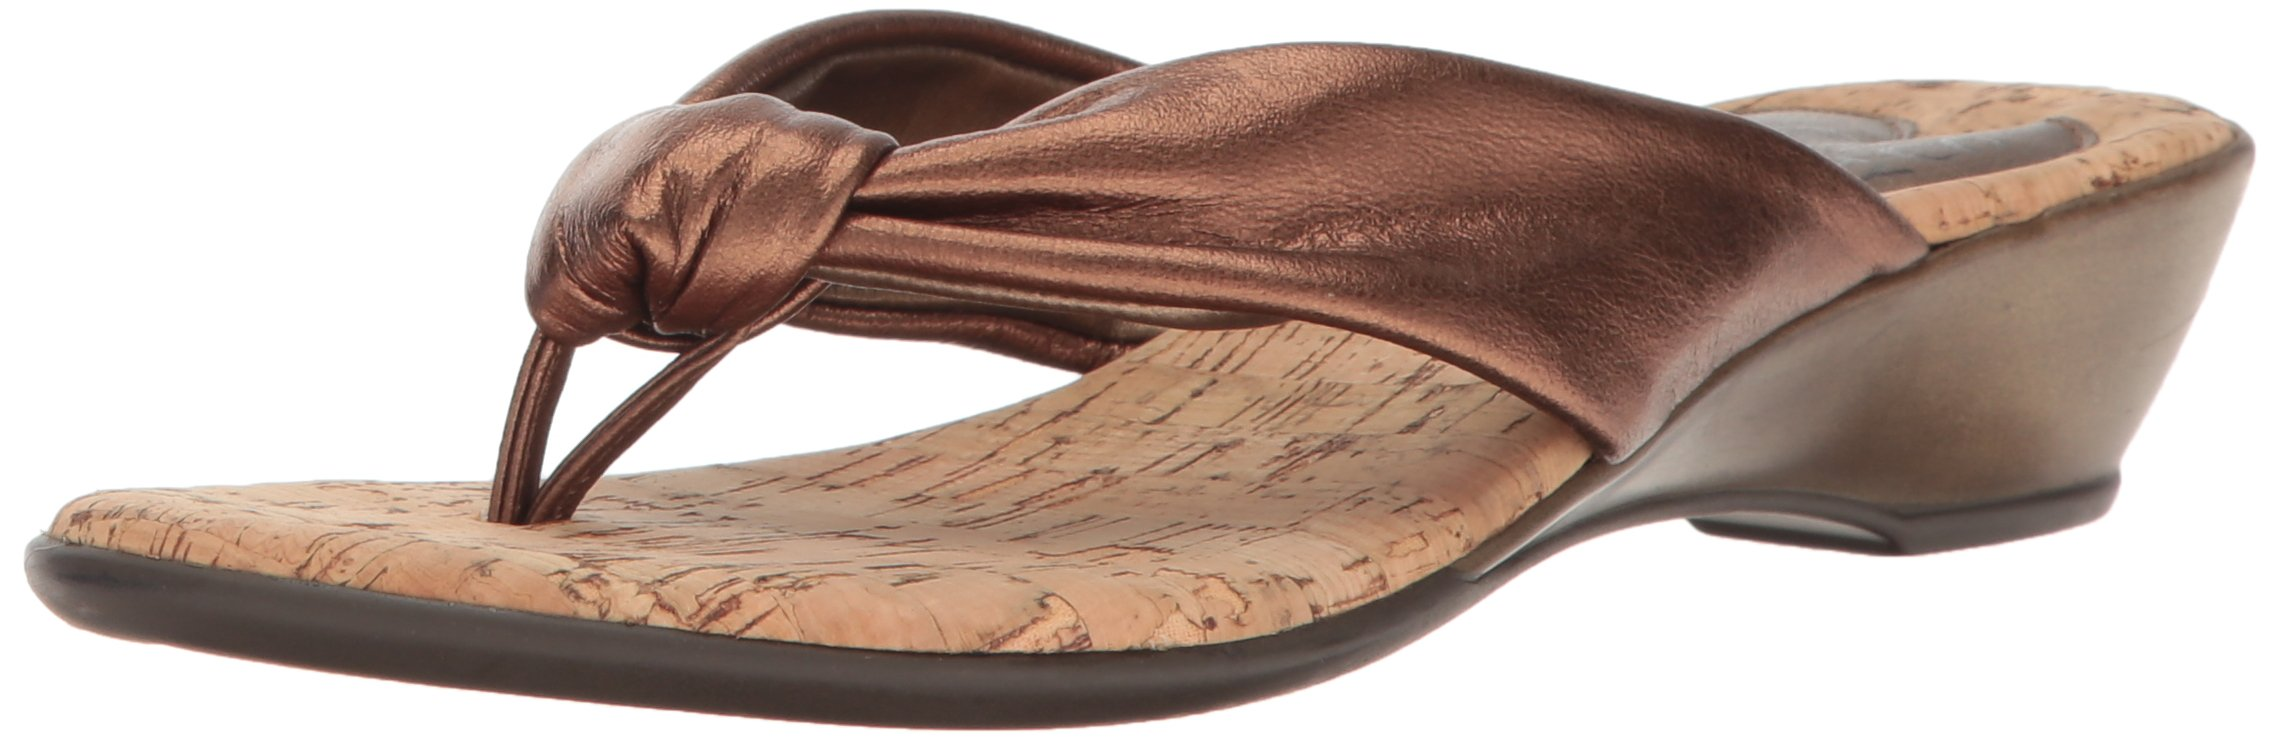 Love & Liberty Women's Janine-LL Dress Sandal, Bronze, 11 M US